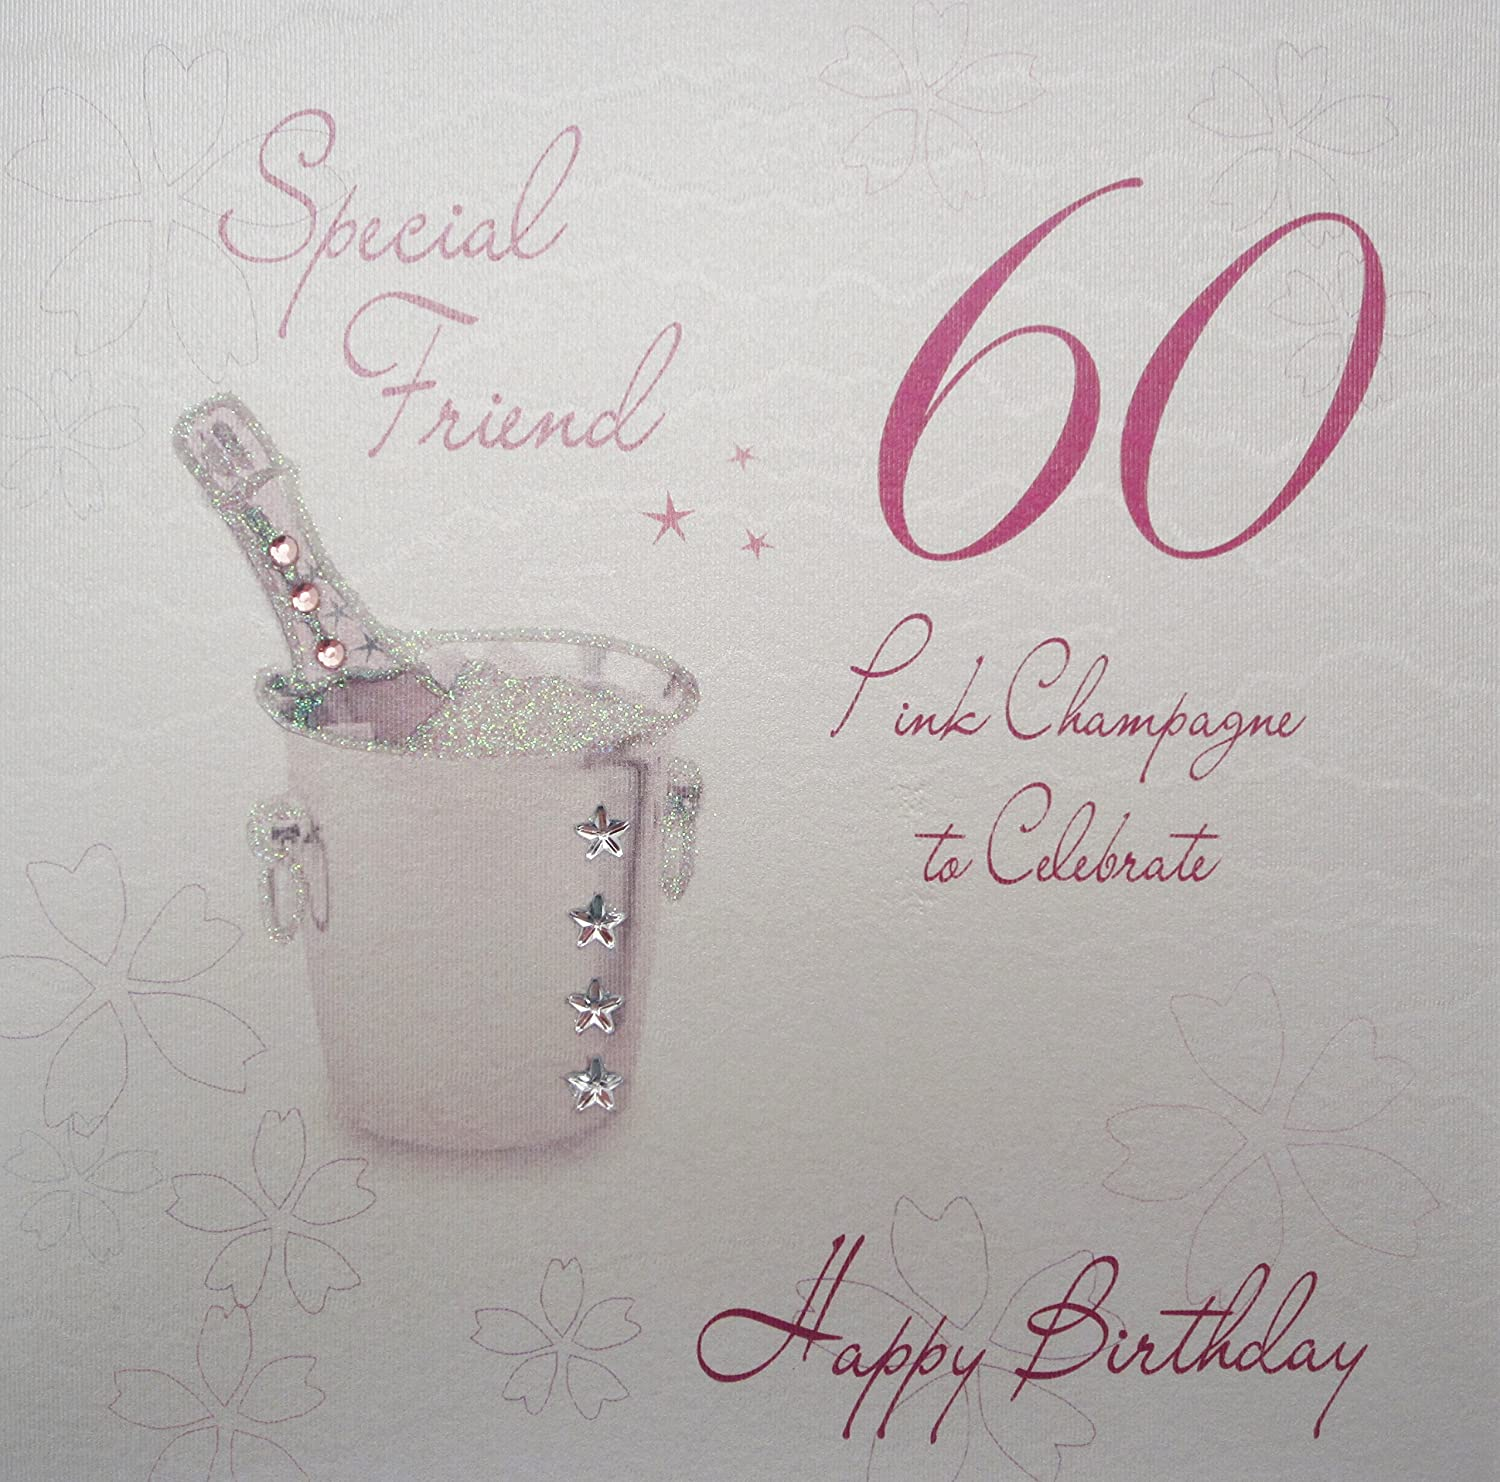 For a special friend on your 60th birthday card amazon white cotton cards wba60p sf pink champagne special friend 60 to celebrate happy birthday bookmarktalkfo Choice Image